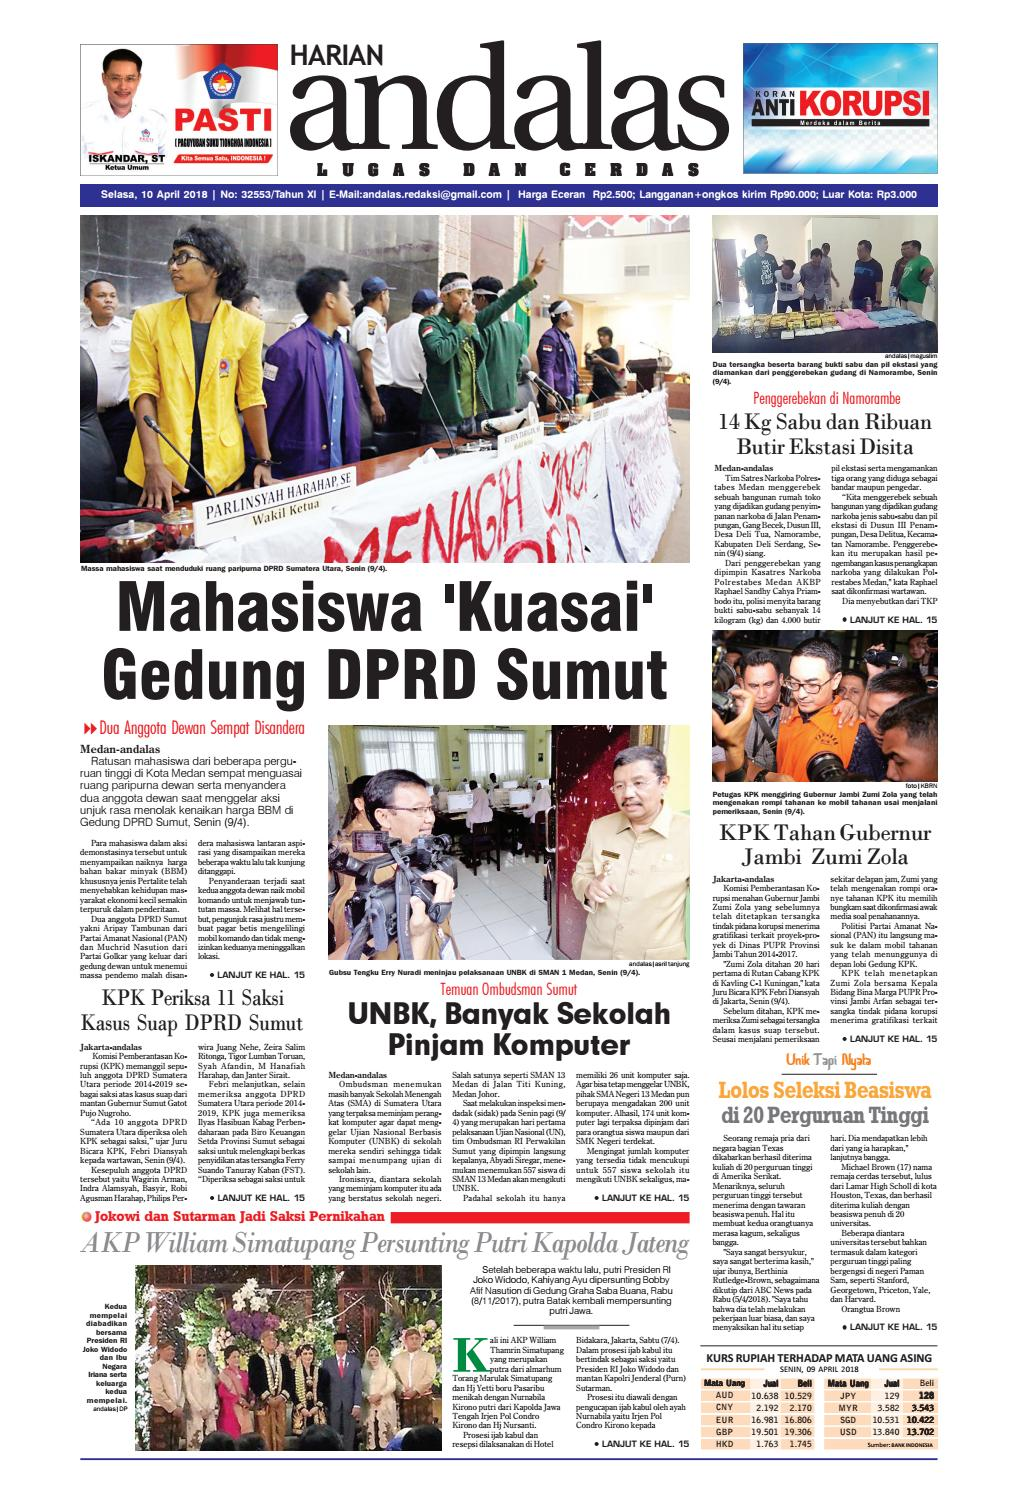 Epaper Andalas Edisi Selasa 10 April 2018 By Media Andalas